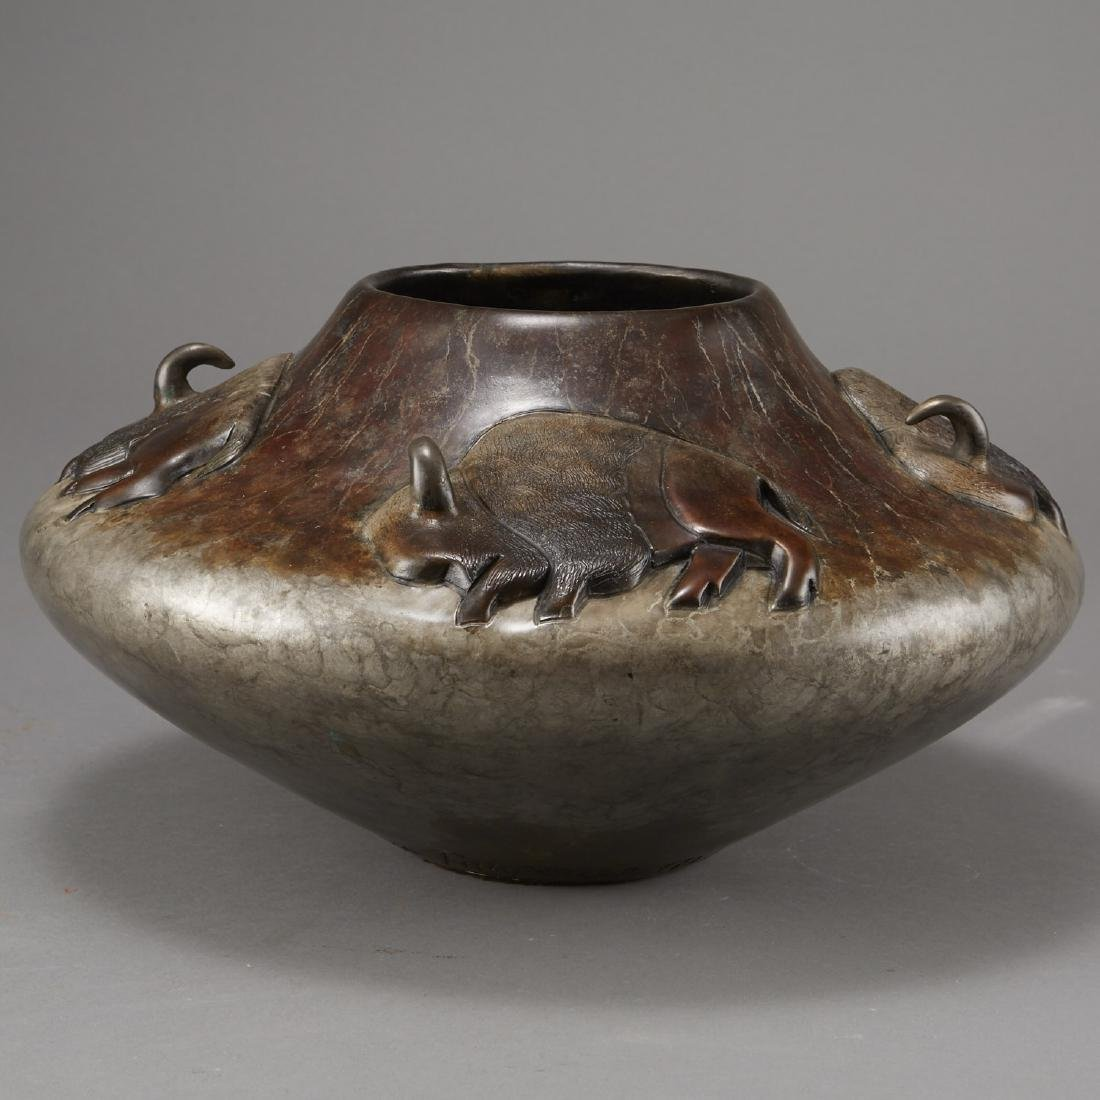 Pahponee Bronze Vessel In a Sacred Manner I Walk - 3